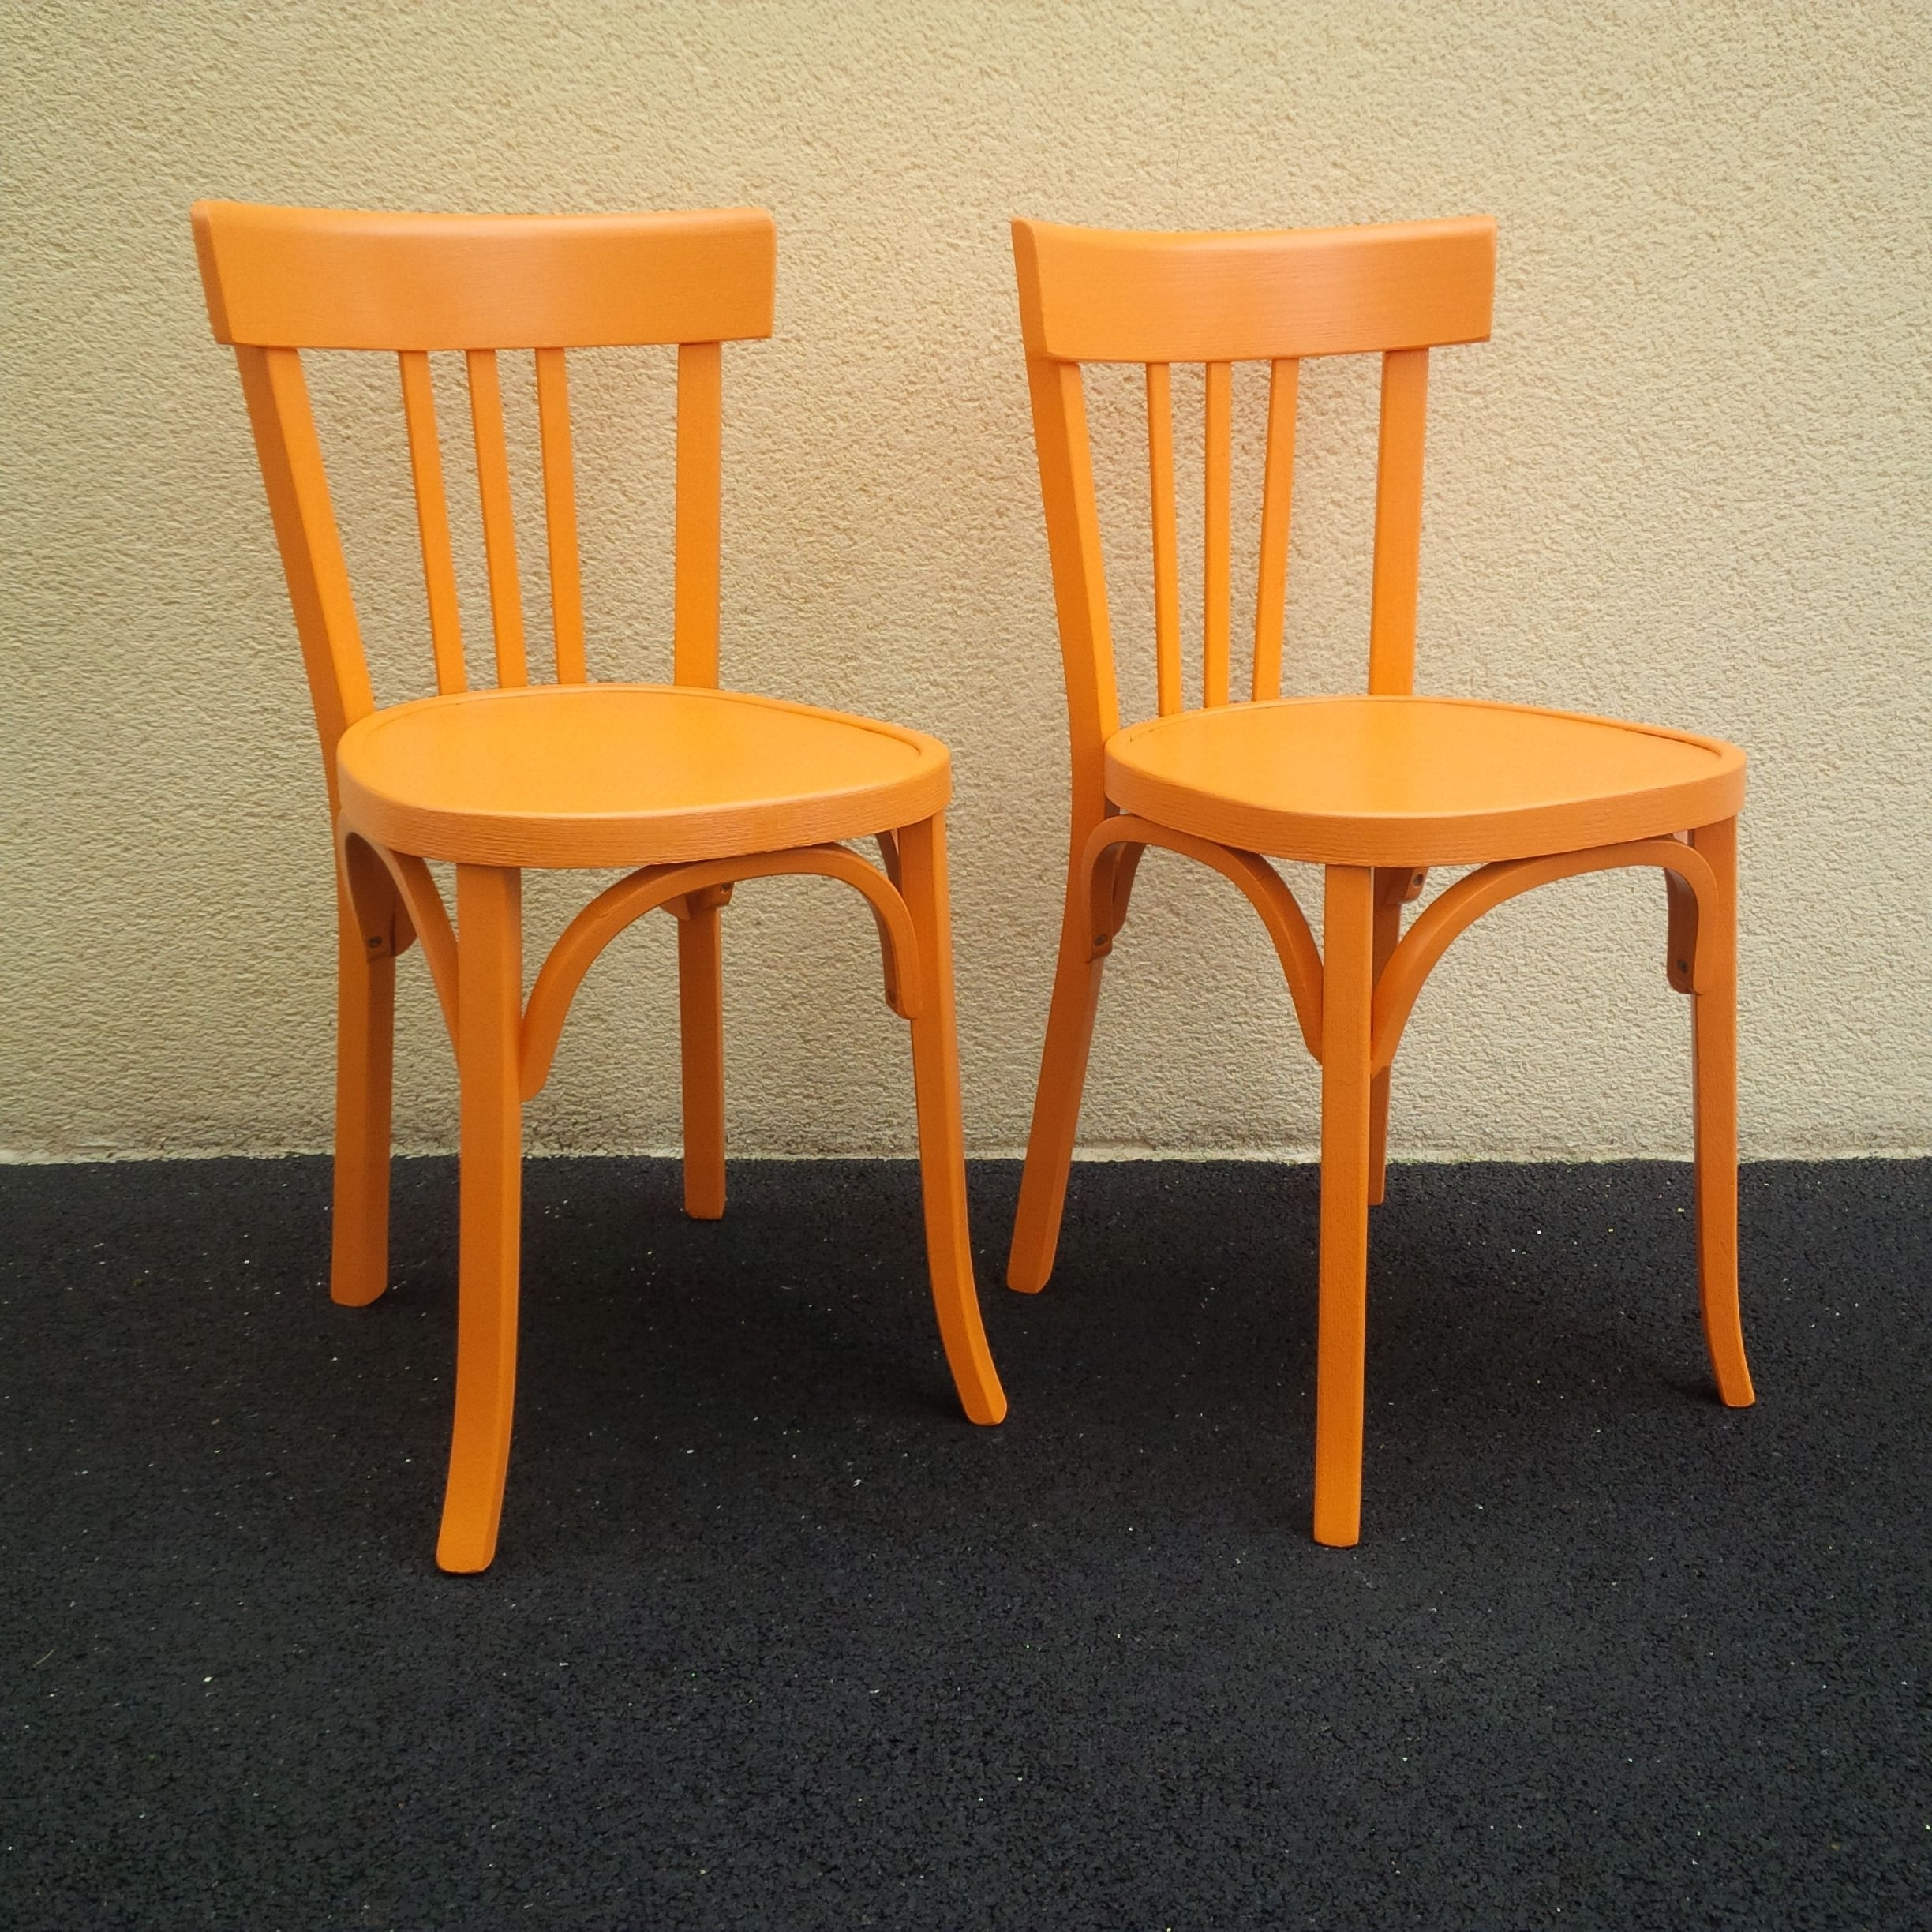 Chaises Baumann Bistrot Orangeade #chaise #baumann #bistrot For Well Known Orange Chaises (View 13 of 15)